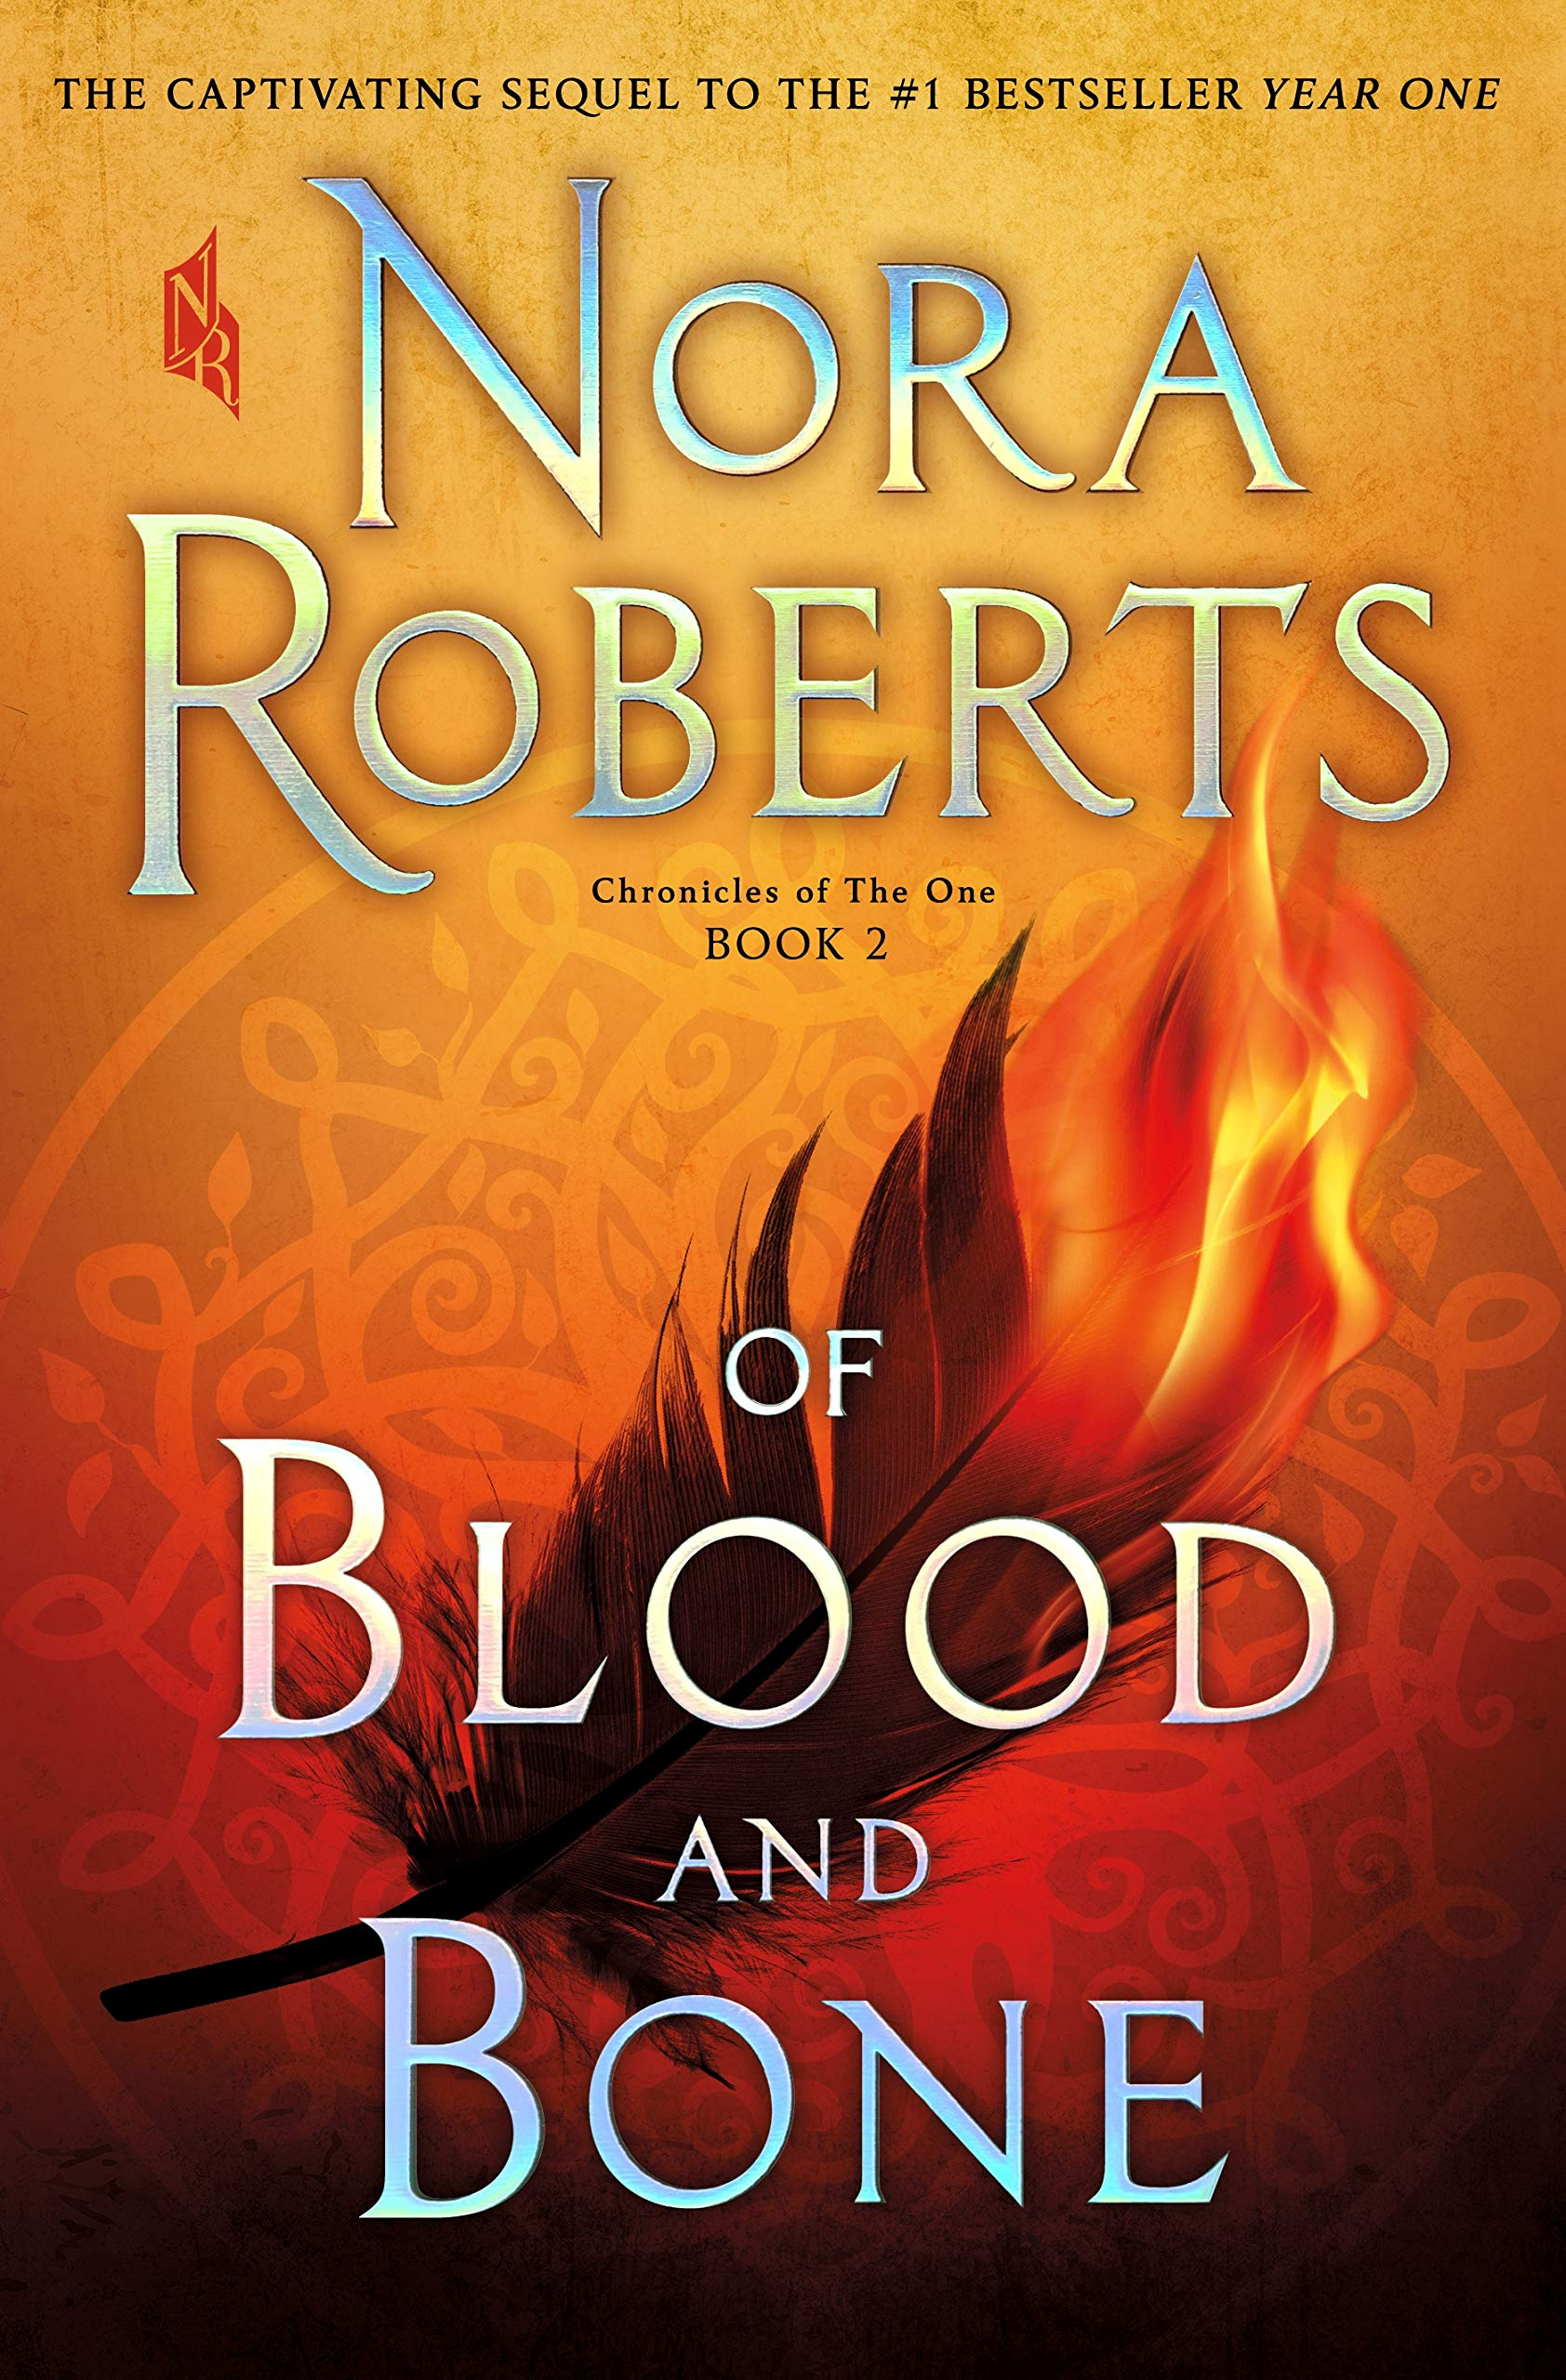 Of Blood and Bone: Chronicles of The One, Book 2 by St. Martin's Press